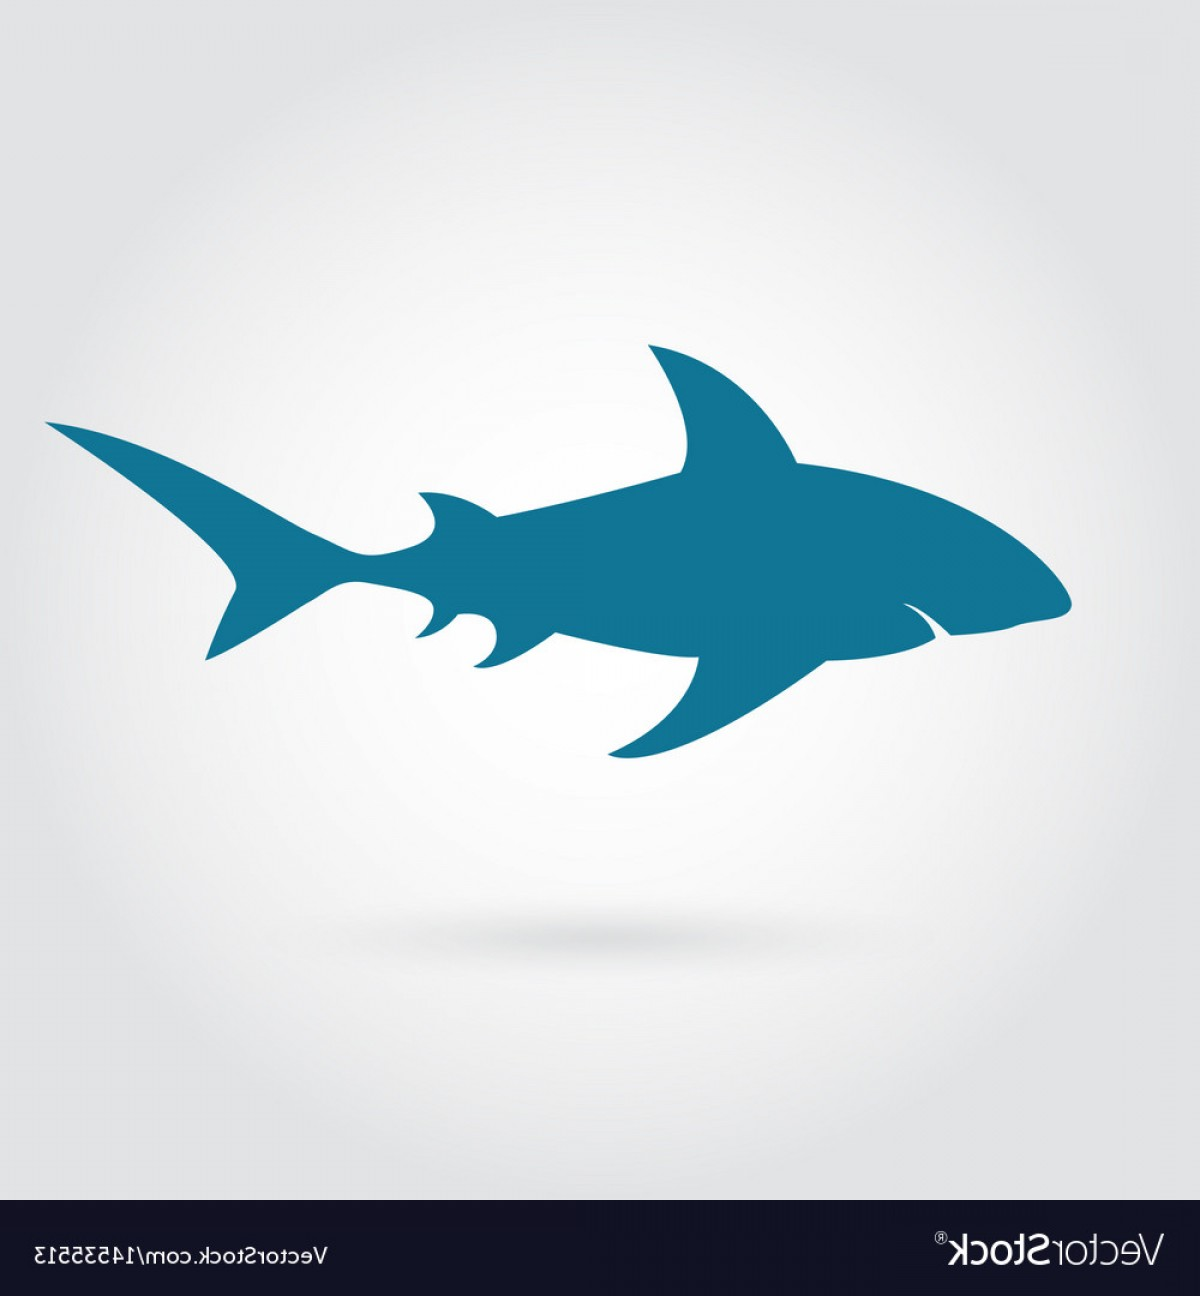 Vector Systems Fins: Blue Shark Silhouette With Sharp Fins Vector